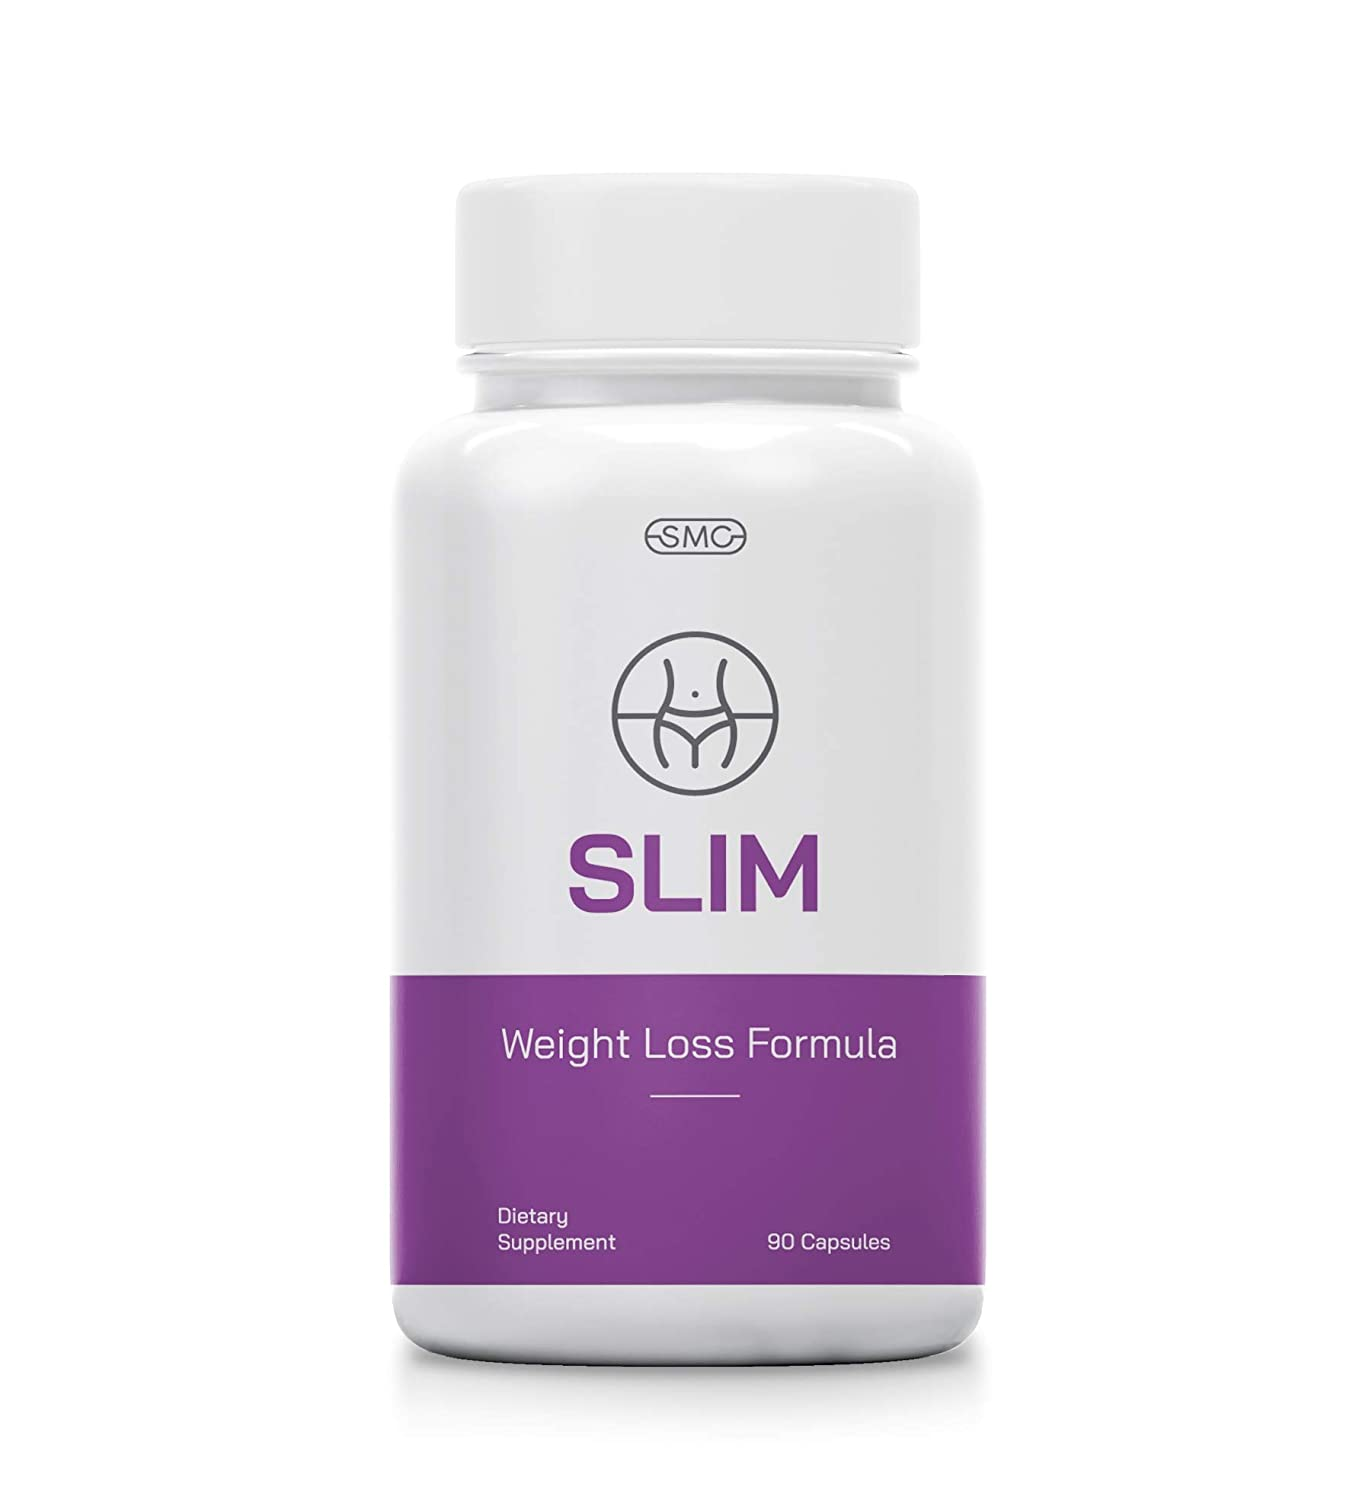 Slim Natural Herbal Weight Loss Pills for Women. 90 Capsules. Effective Appetite suppressant & Metabolism Booster Supplement. Safe & FDA Approved. Non-GMO, No-Soy, Gluten-Free, Nature Based.